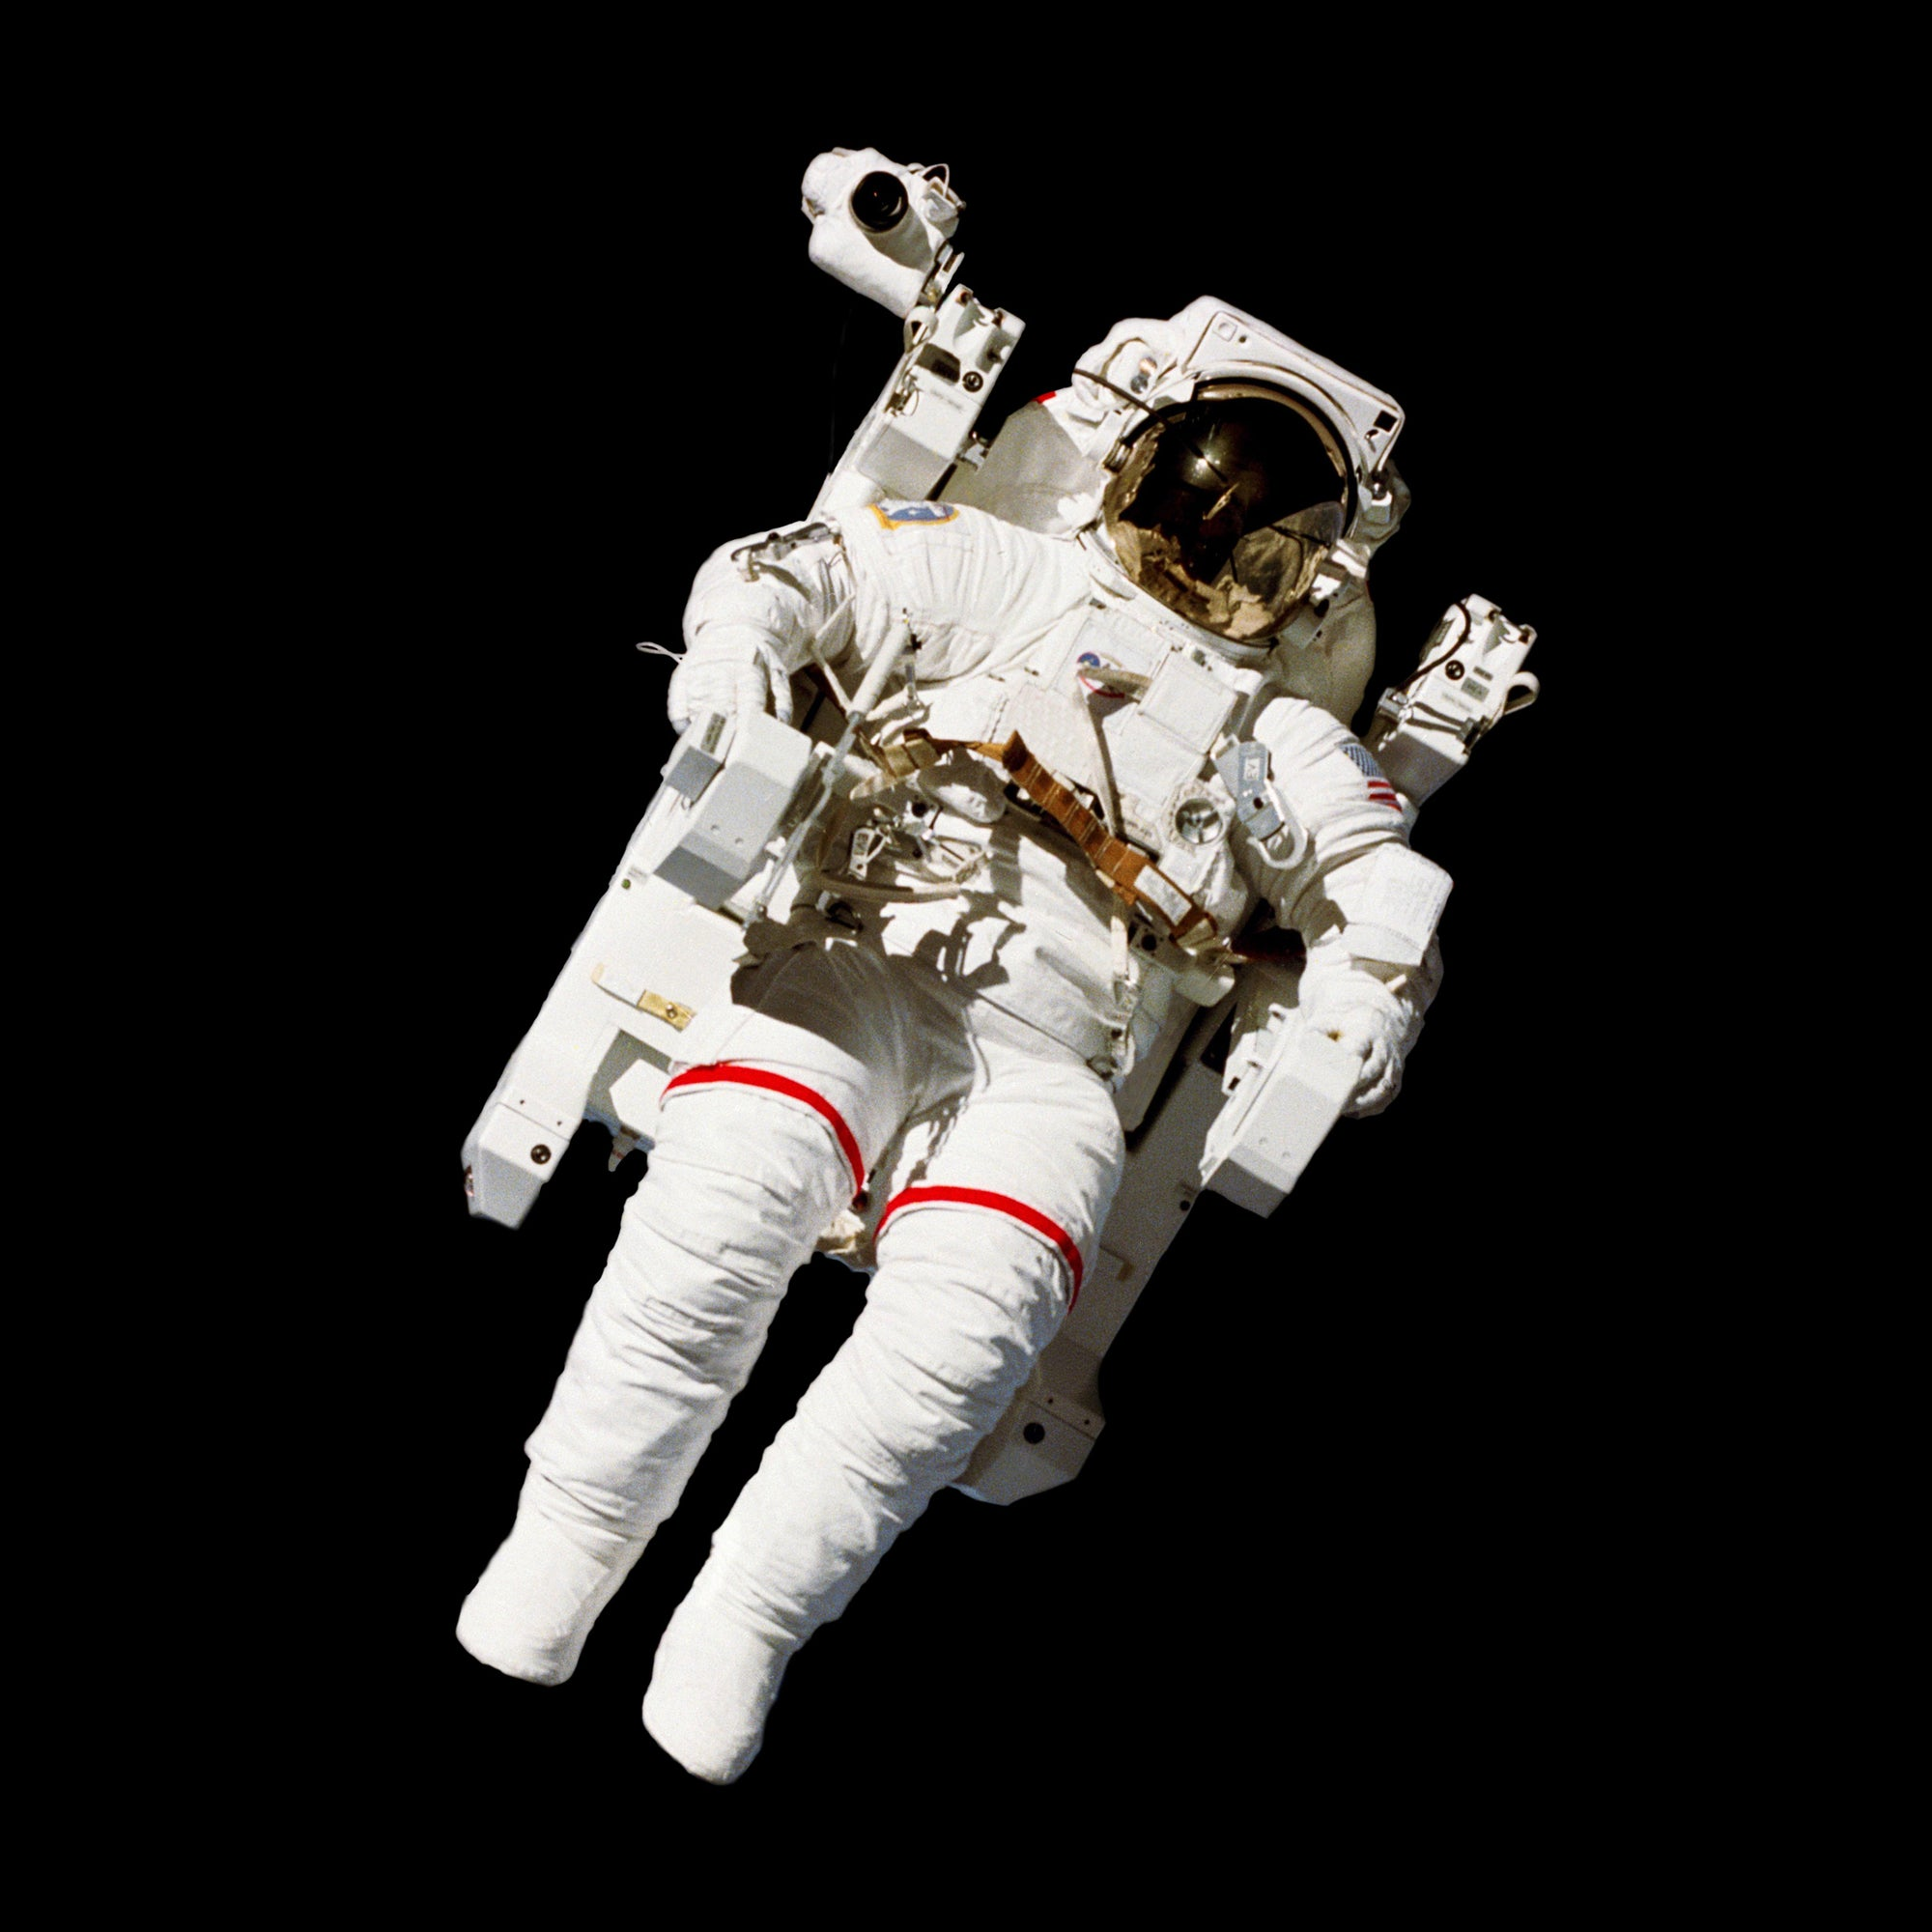 How Do Astronauts Workout In Space?